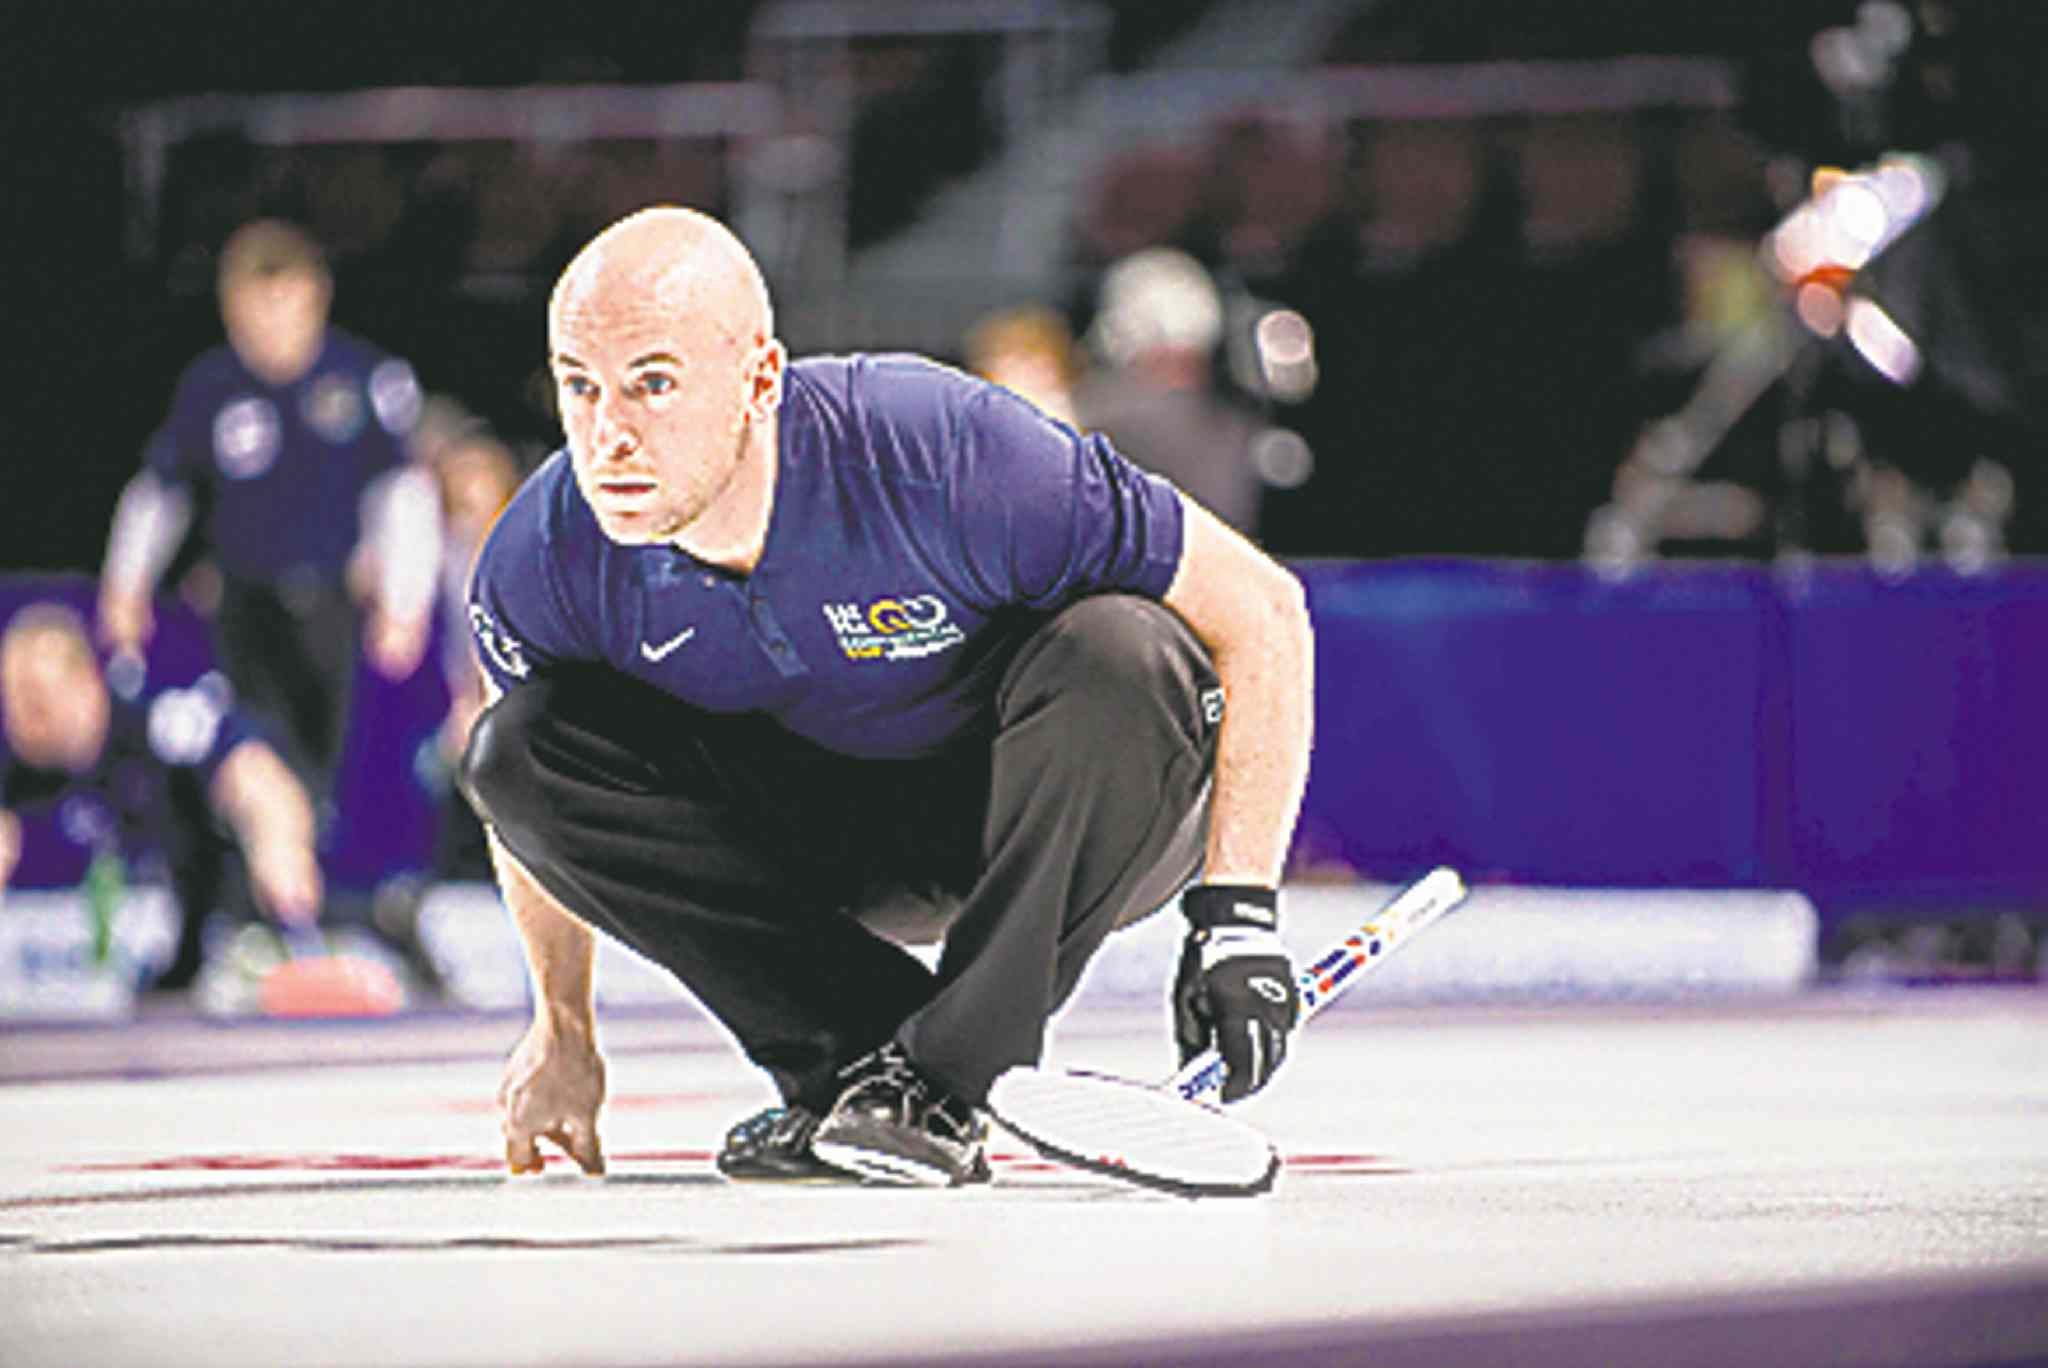 chris holloman / the canadian press filesRyan Fry is off to Sochi next month.